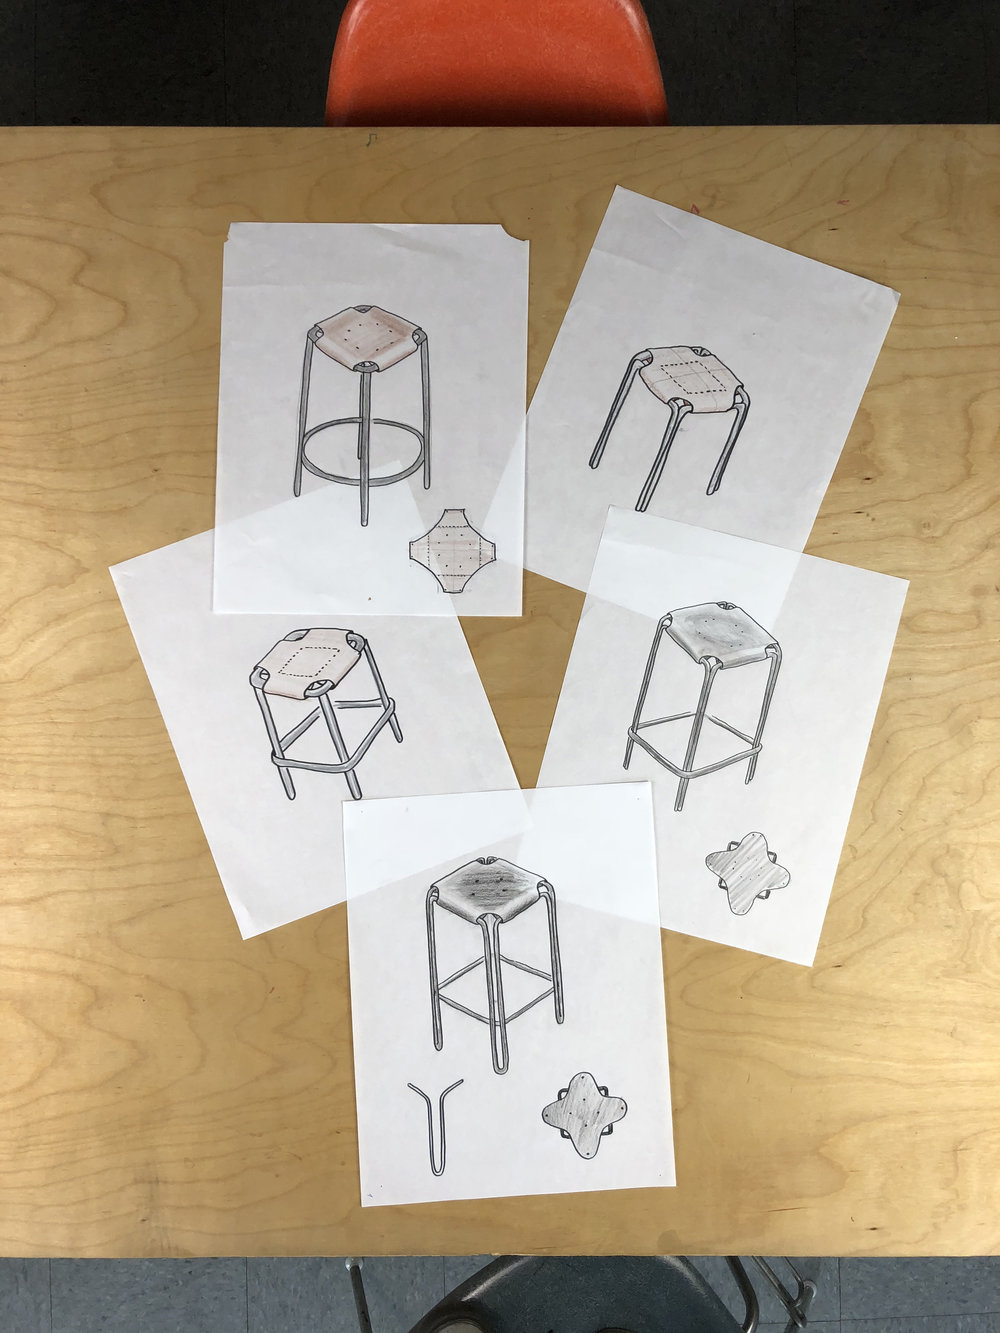 "- Stool Nº1 started as an exploration in bent wire stool construction—in these early sketches designer Craighton Berman was playing with different tubing forms for the frame, as well as various seating materials—including a leather sling. The bottom 'hairpin leg"" concept was a breakthrough, as it allowed for a thinner gauge wire to be used. This meant the design could be visually light while still maintaining strength."